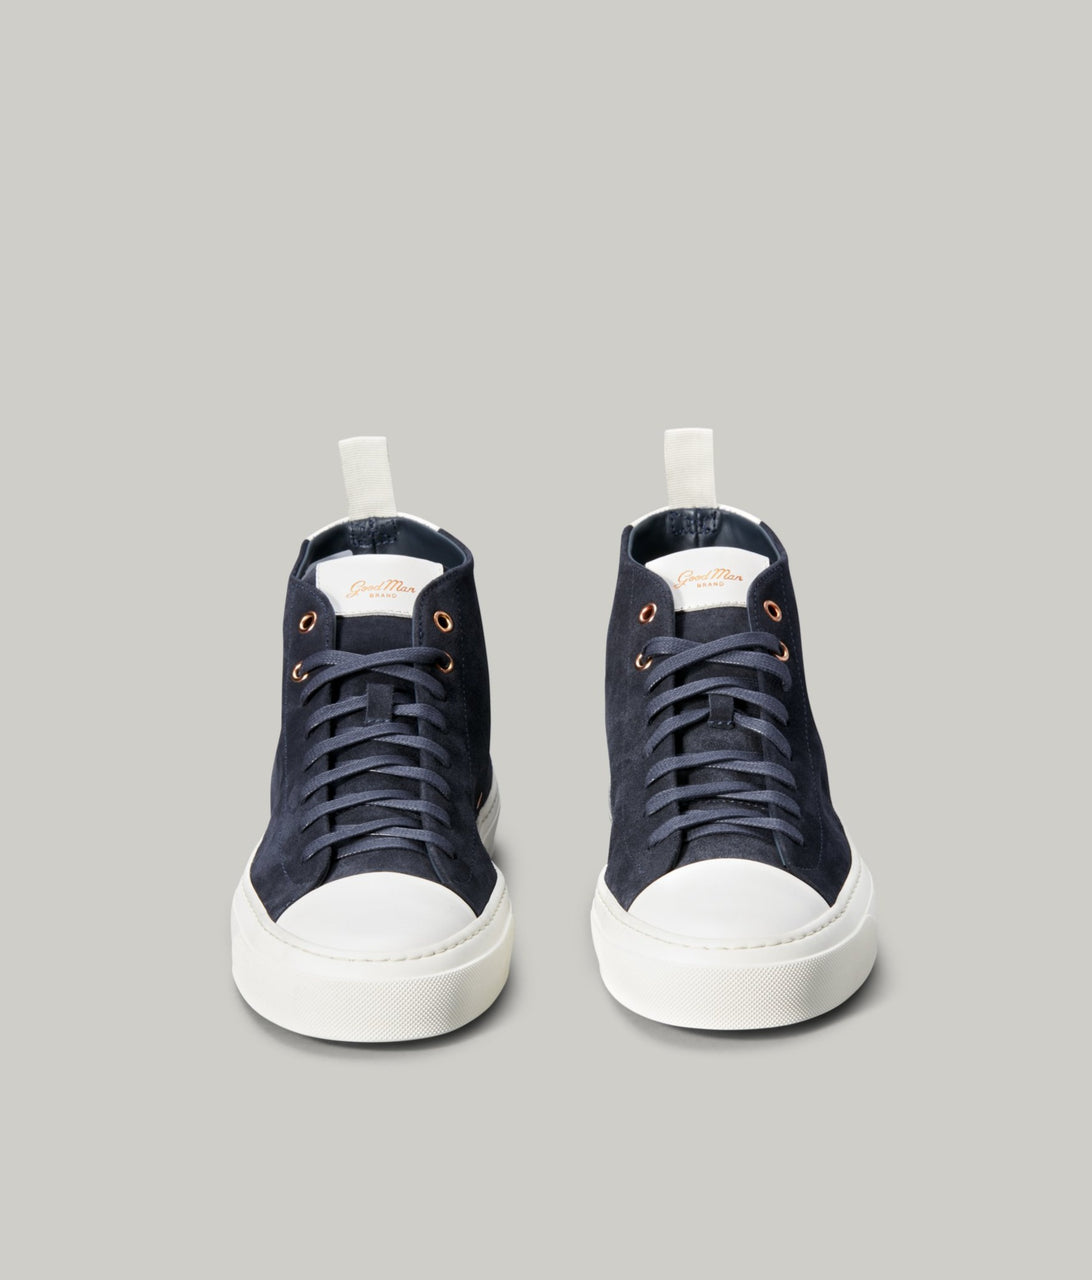 Legacy Hi-Top Sneaker - Navy/Cream - Good Man Brand - Legacy Hi-Top Sneaker - Navy/Cream